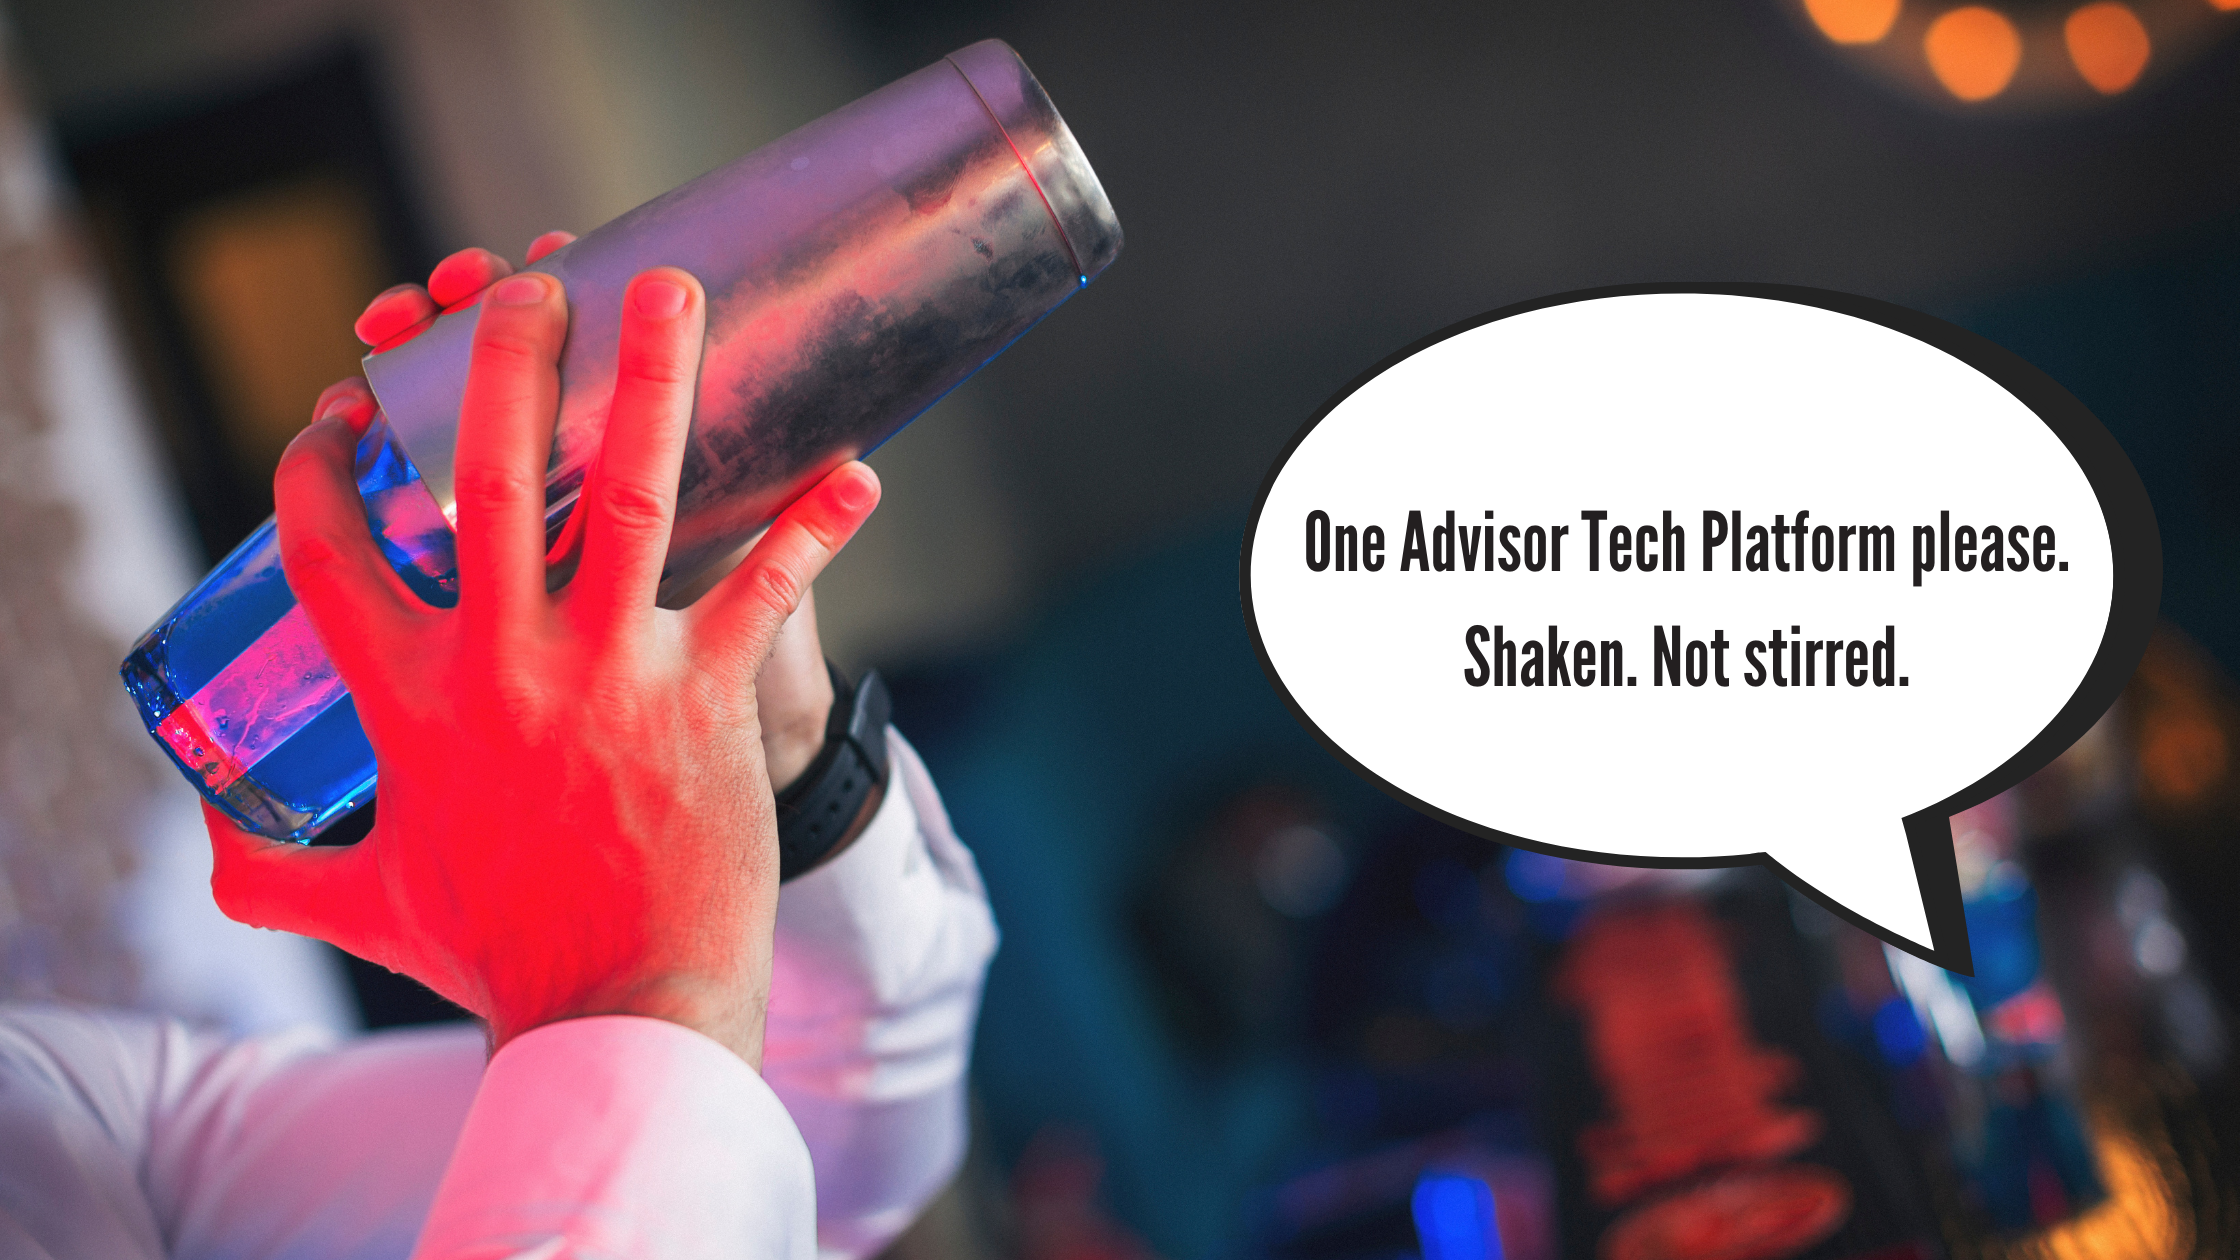 The New Trend Shaking up Advisor Tech Platforms